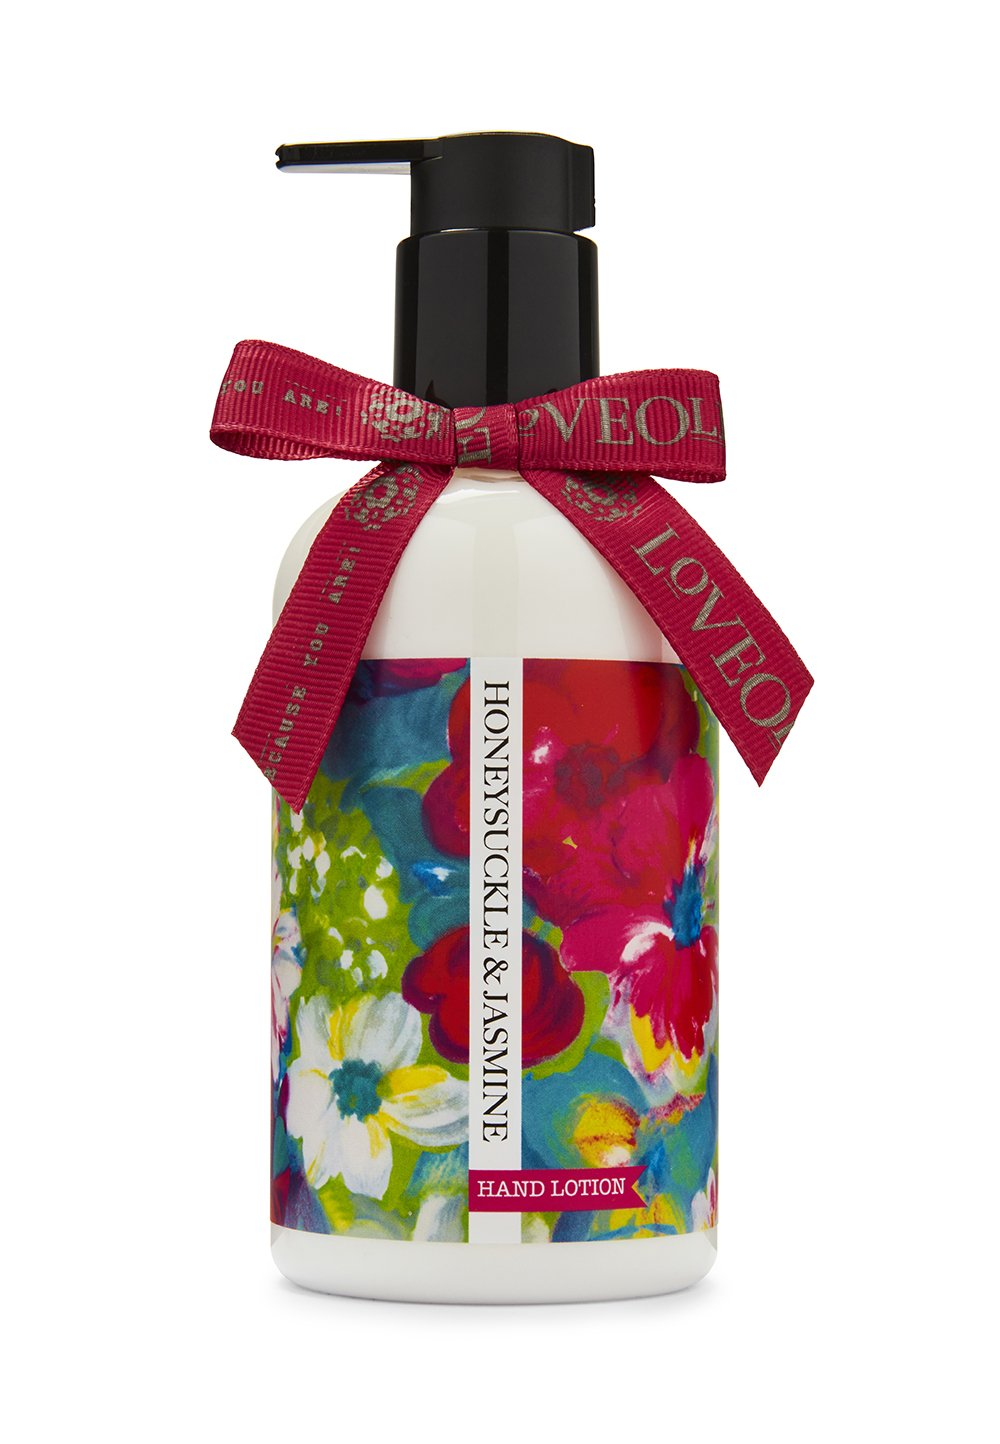 LoveOlli Honeysuckle & Jasmine Hand Lotion